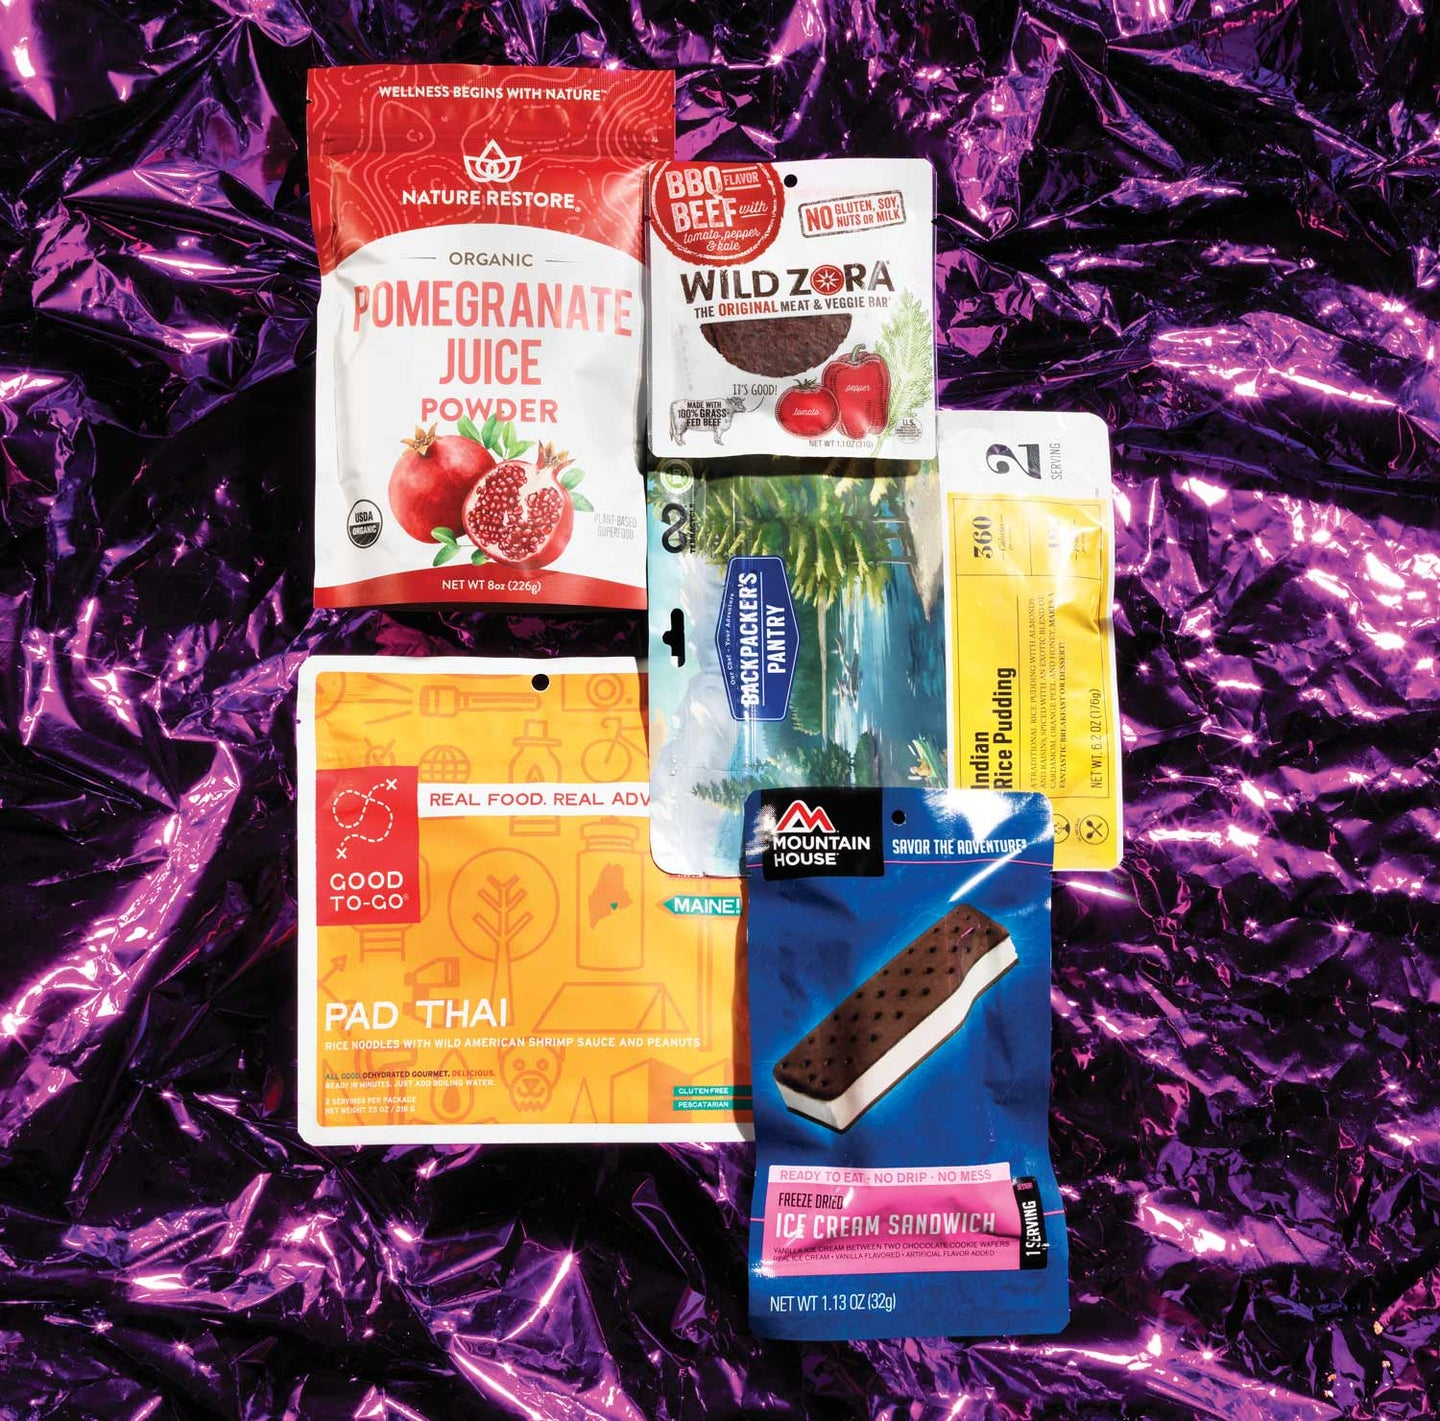 How to build a perfect dehydrated food kit